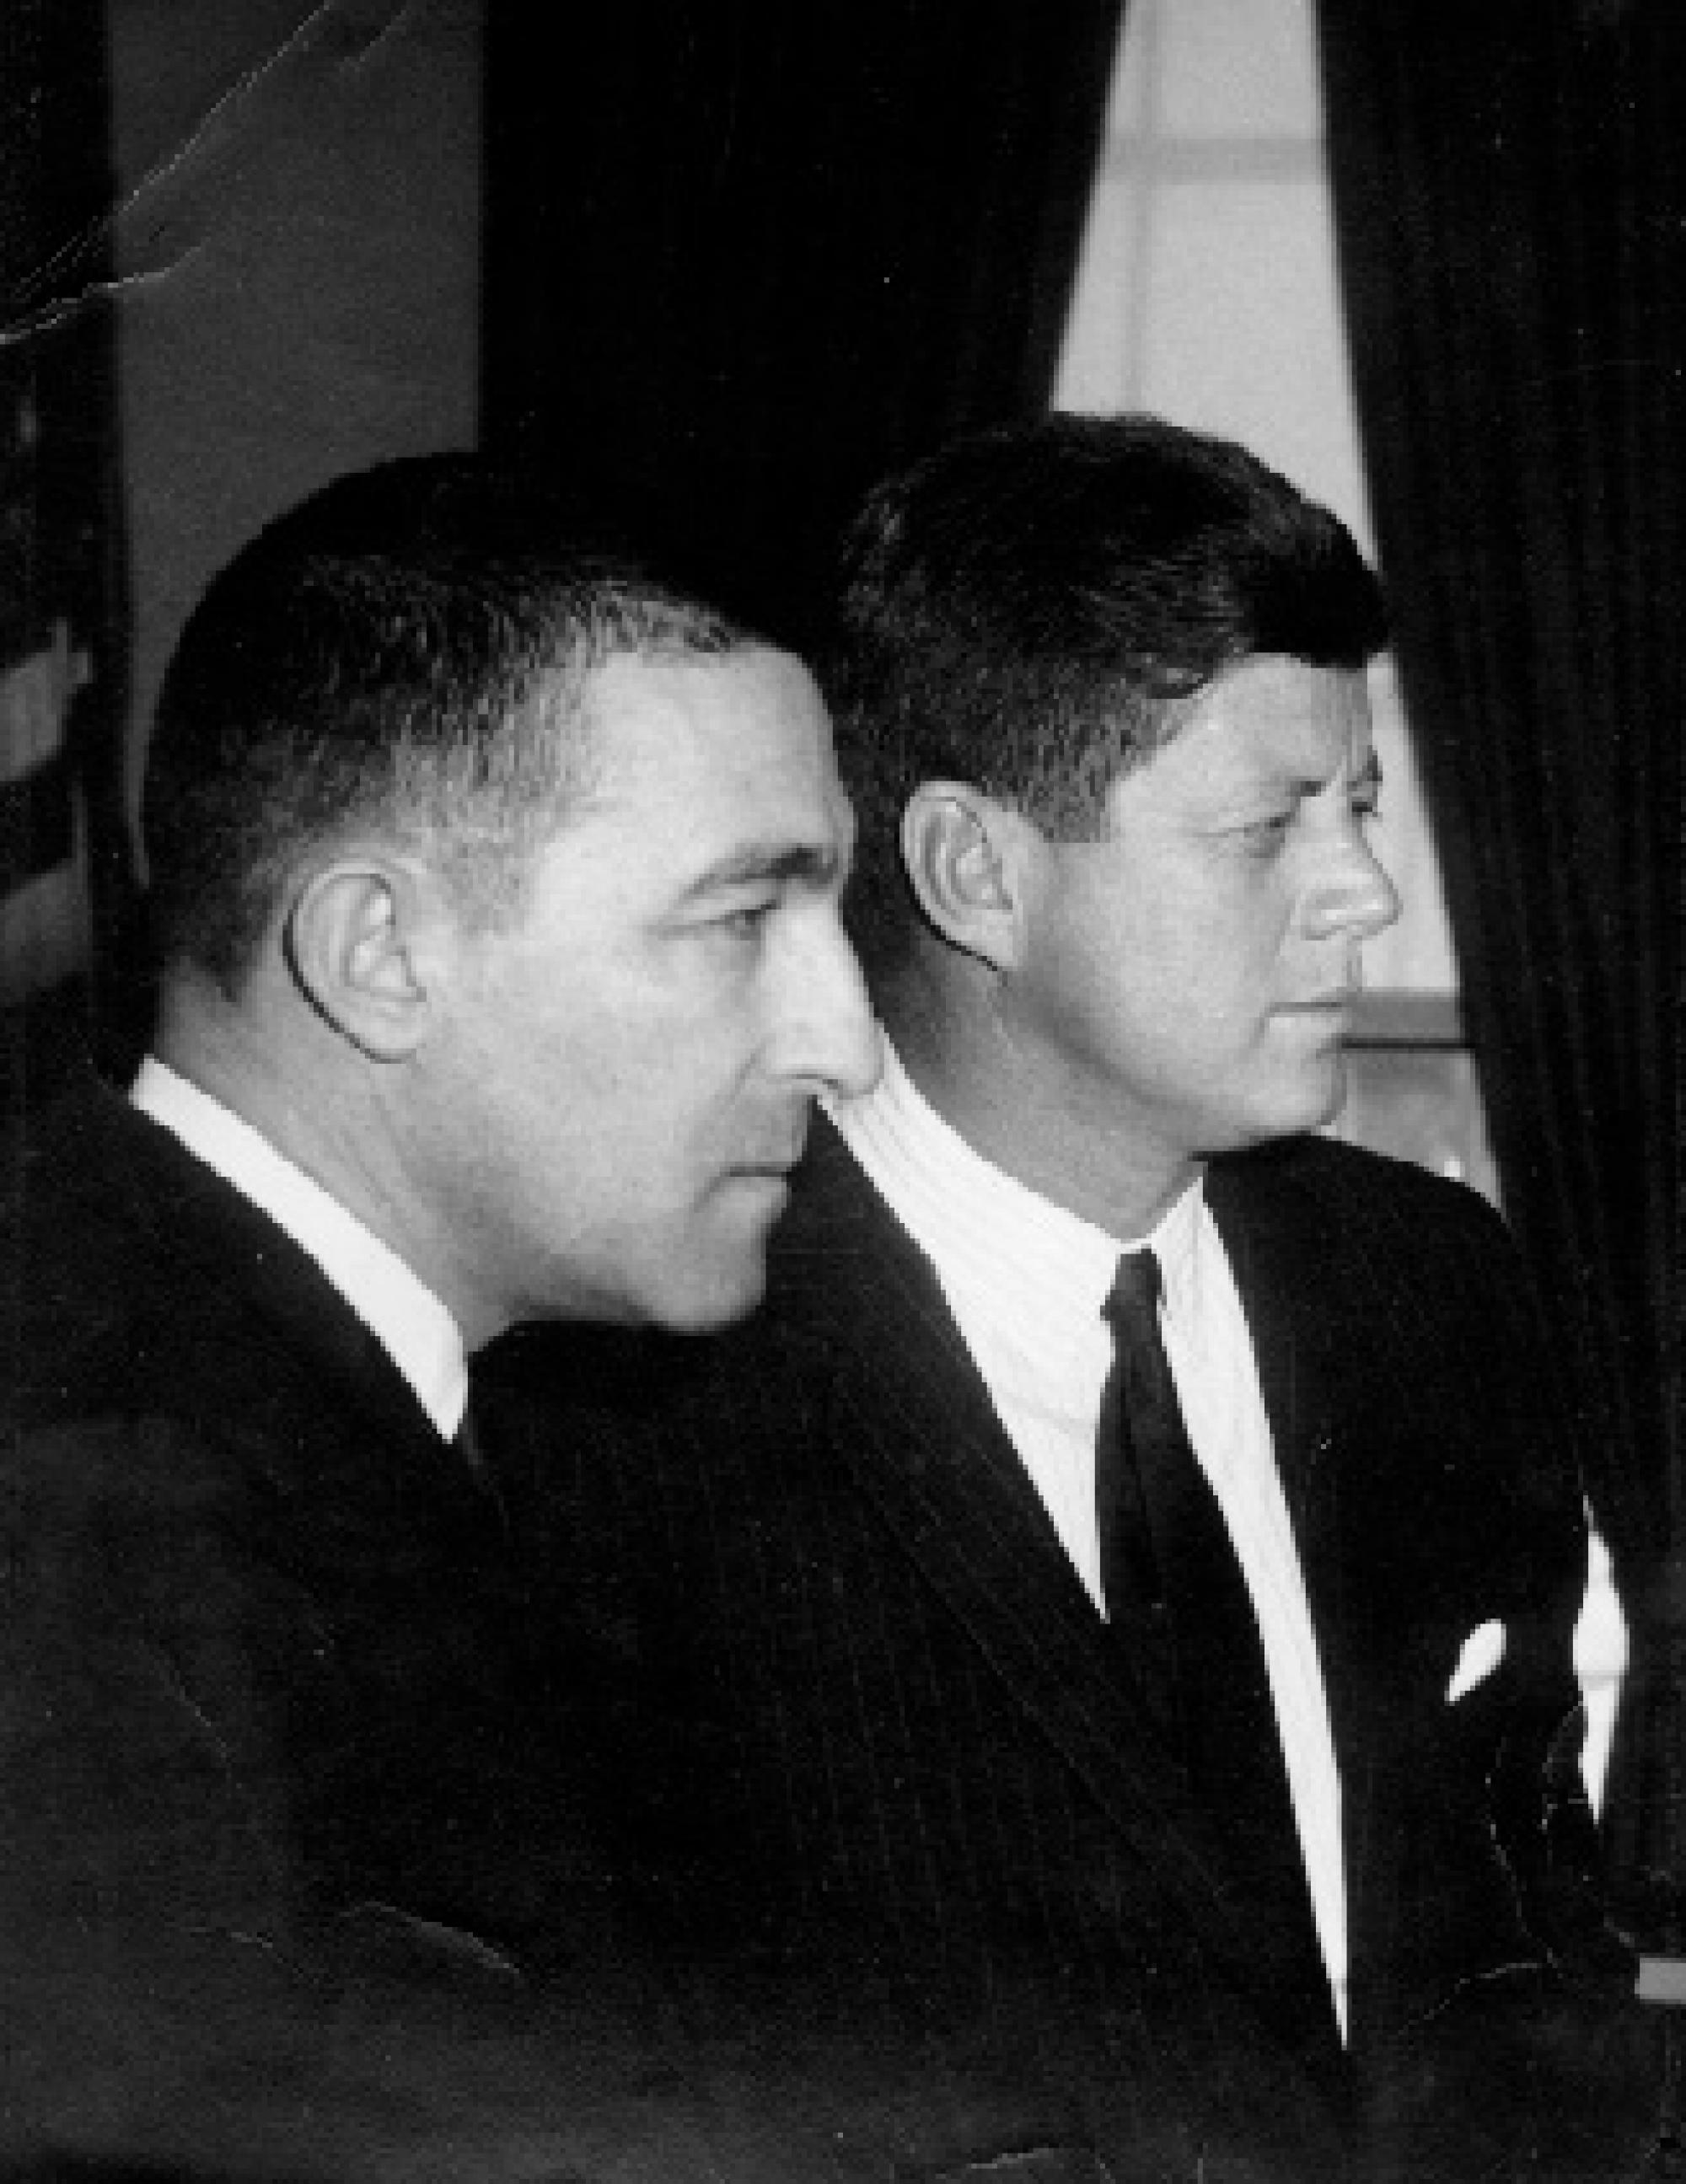 In 1961, then-U.S. Secretary of the Interior Stewart L. Udall with U.S. President John F. Kennedy. Udall has spent his life as an lawyer, author, scholar and environmental activist. He was the last surviving member of President Kennedy's original cabinet.